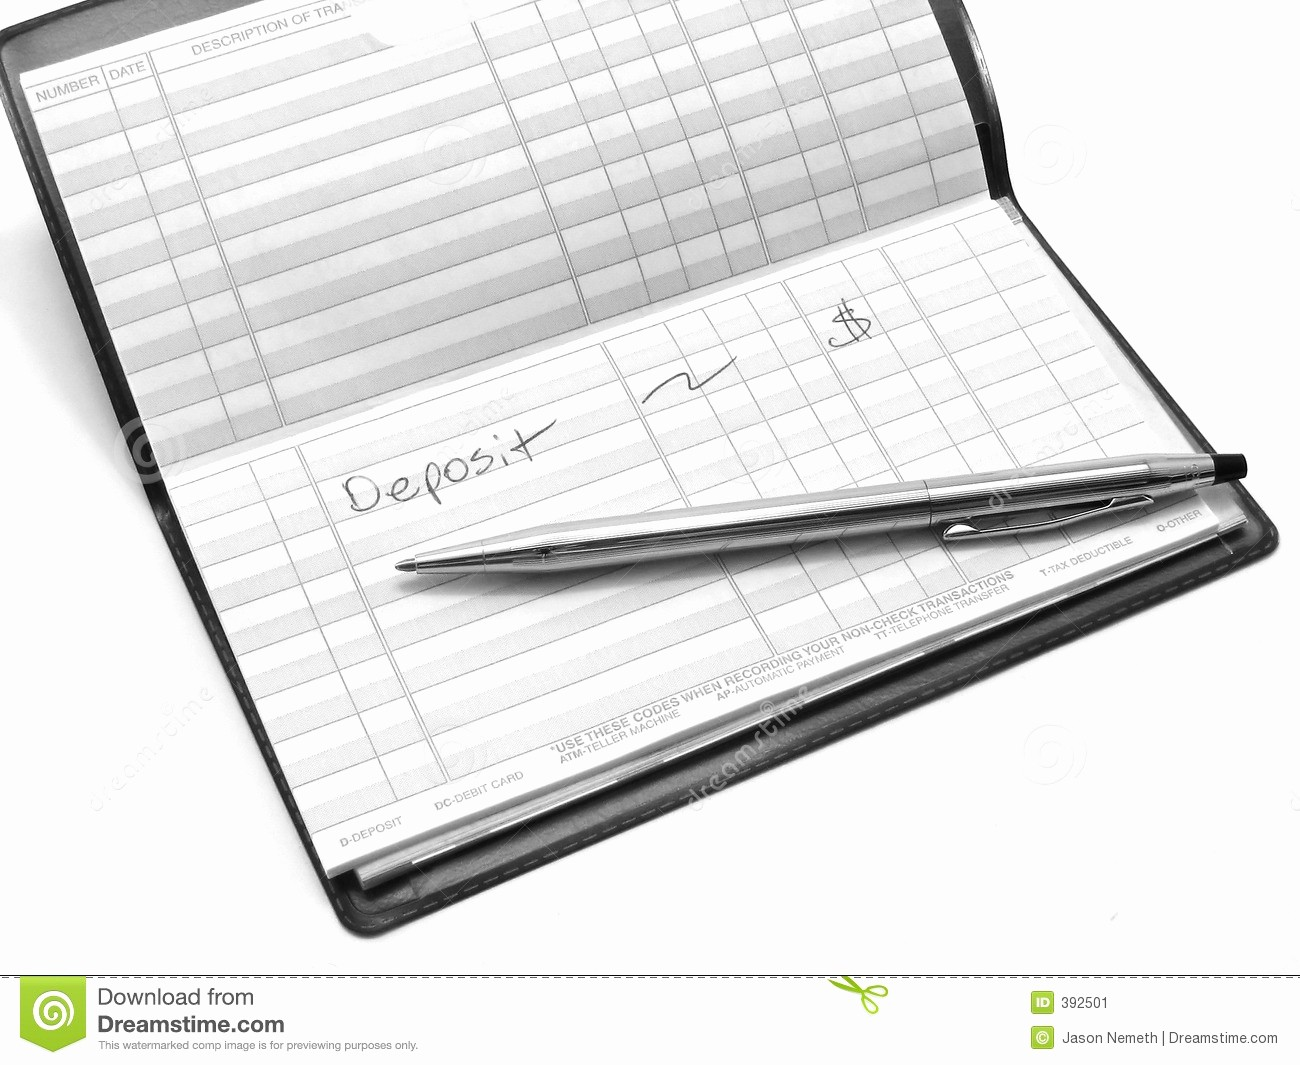 Where to Buy Checkbook Register Unique where Can I Buy A Checkbook Ledger Clgss